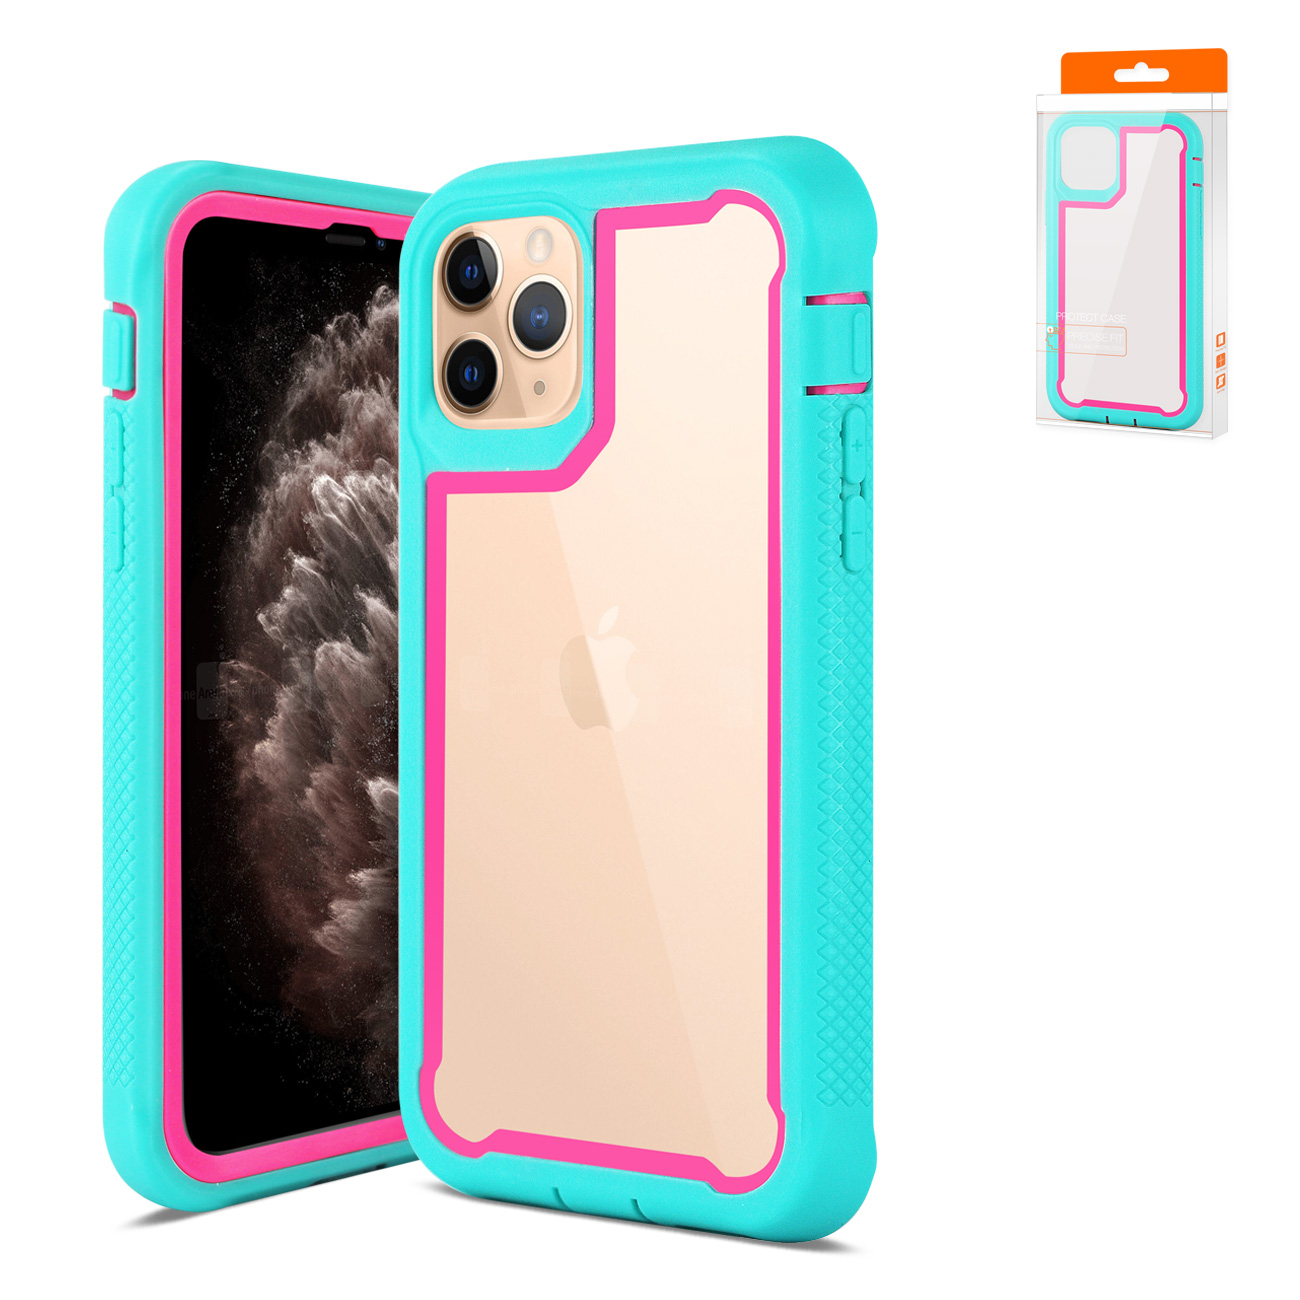 APPLE IPHONE 11 PRO Bumper Case In Blue